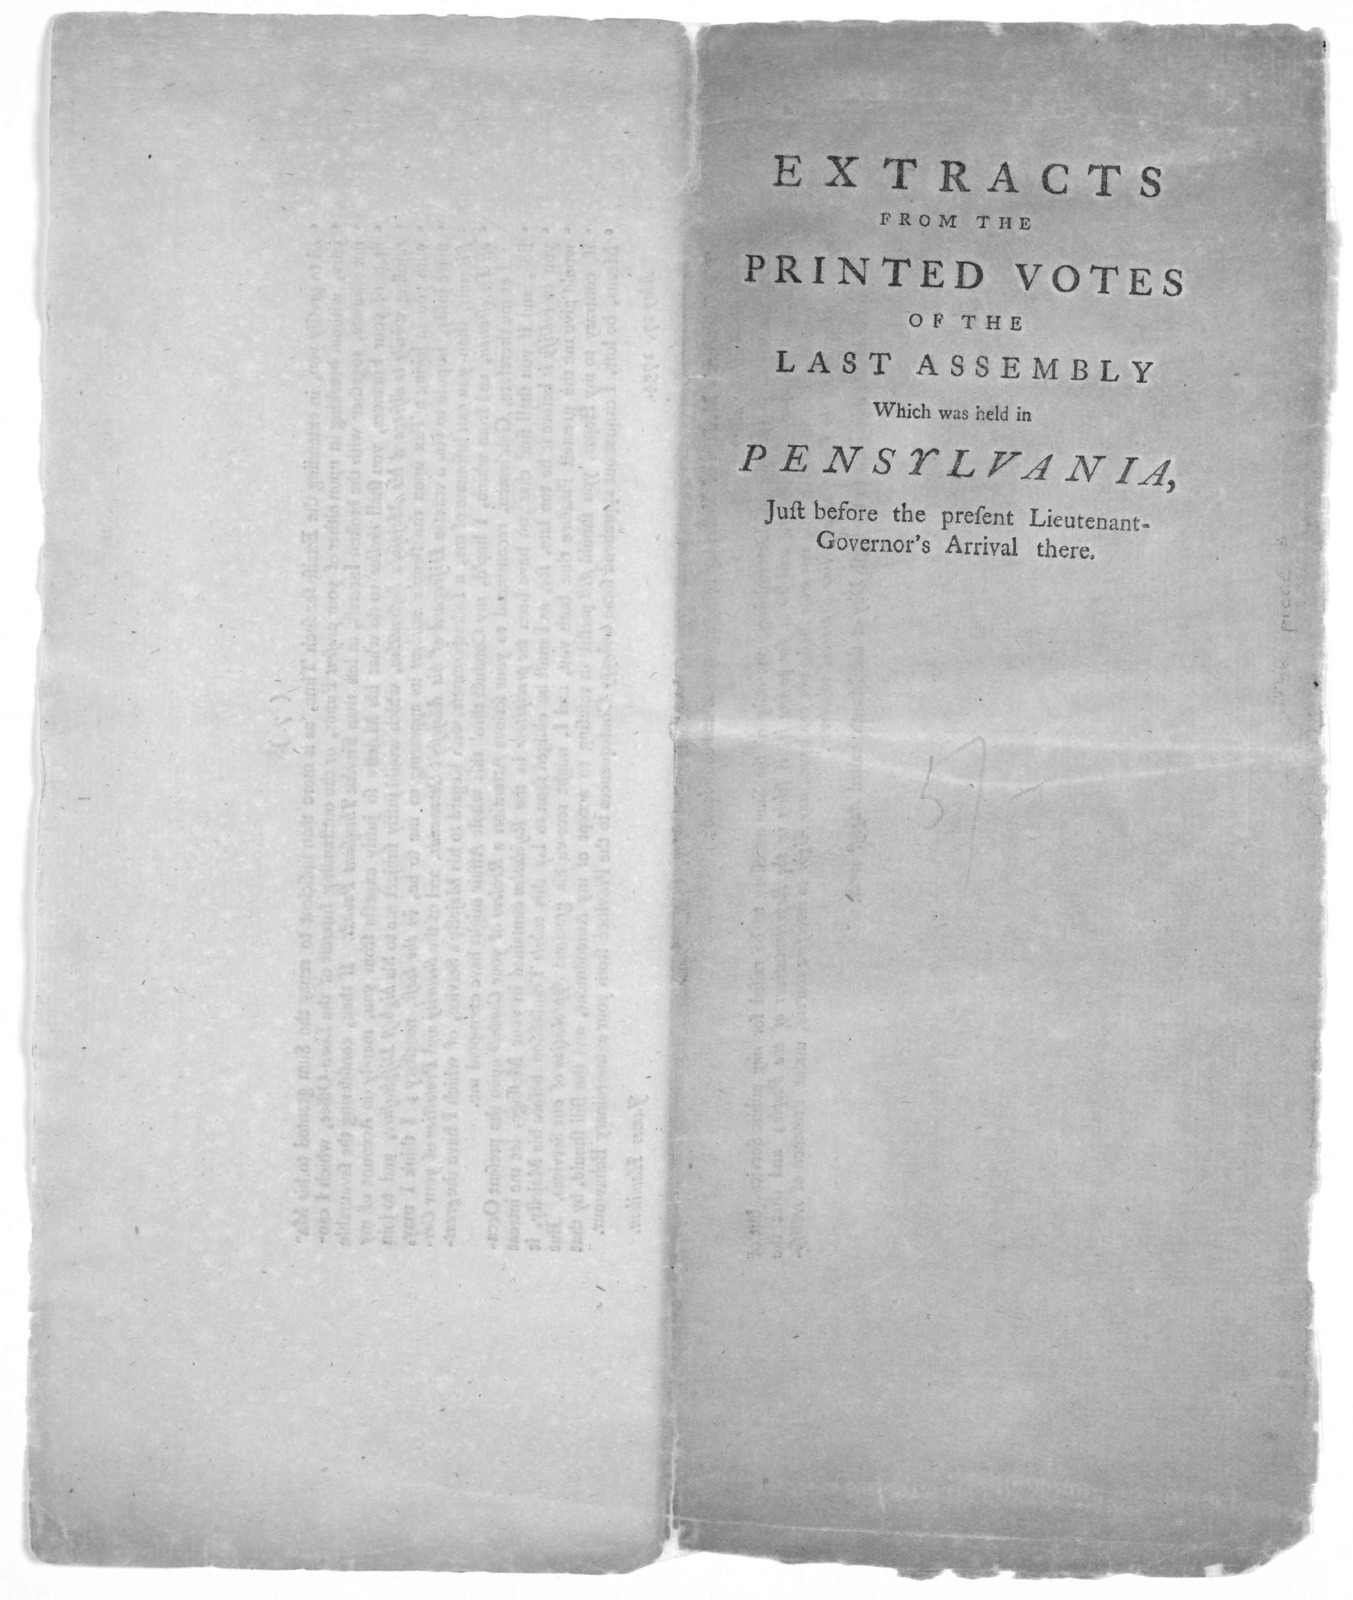 Extracted from the printed votes of the last Assembly which was held in Pennsylvania, just before the present Lieutenant-Governor's arrival there, viz [Philadelphia 1754].